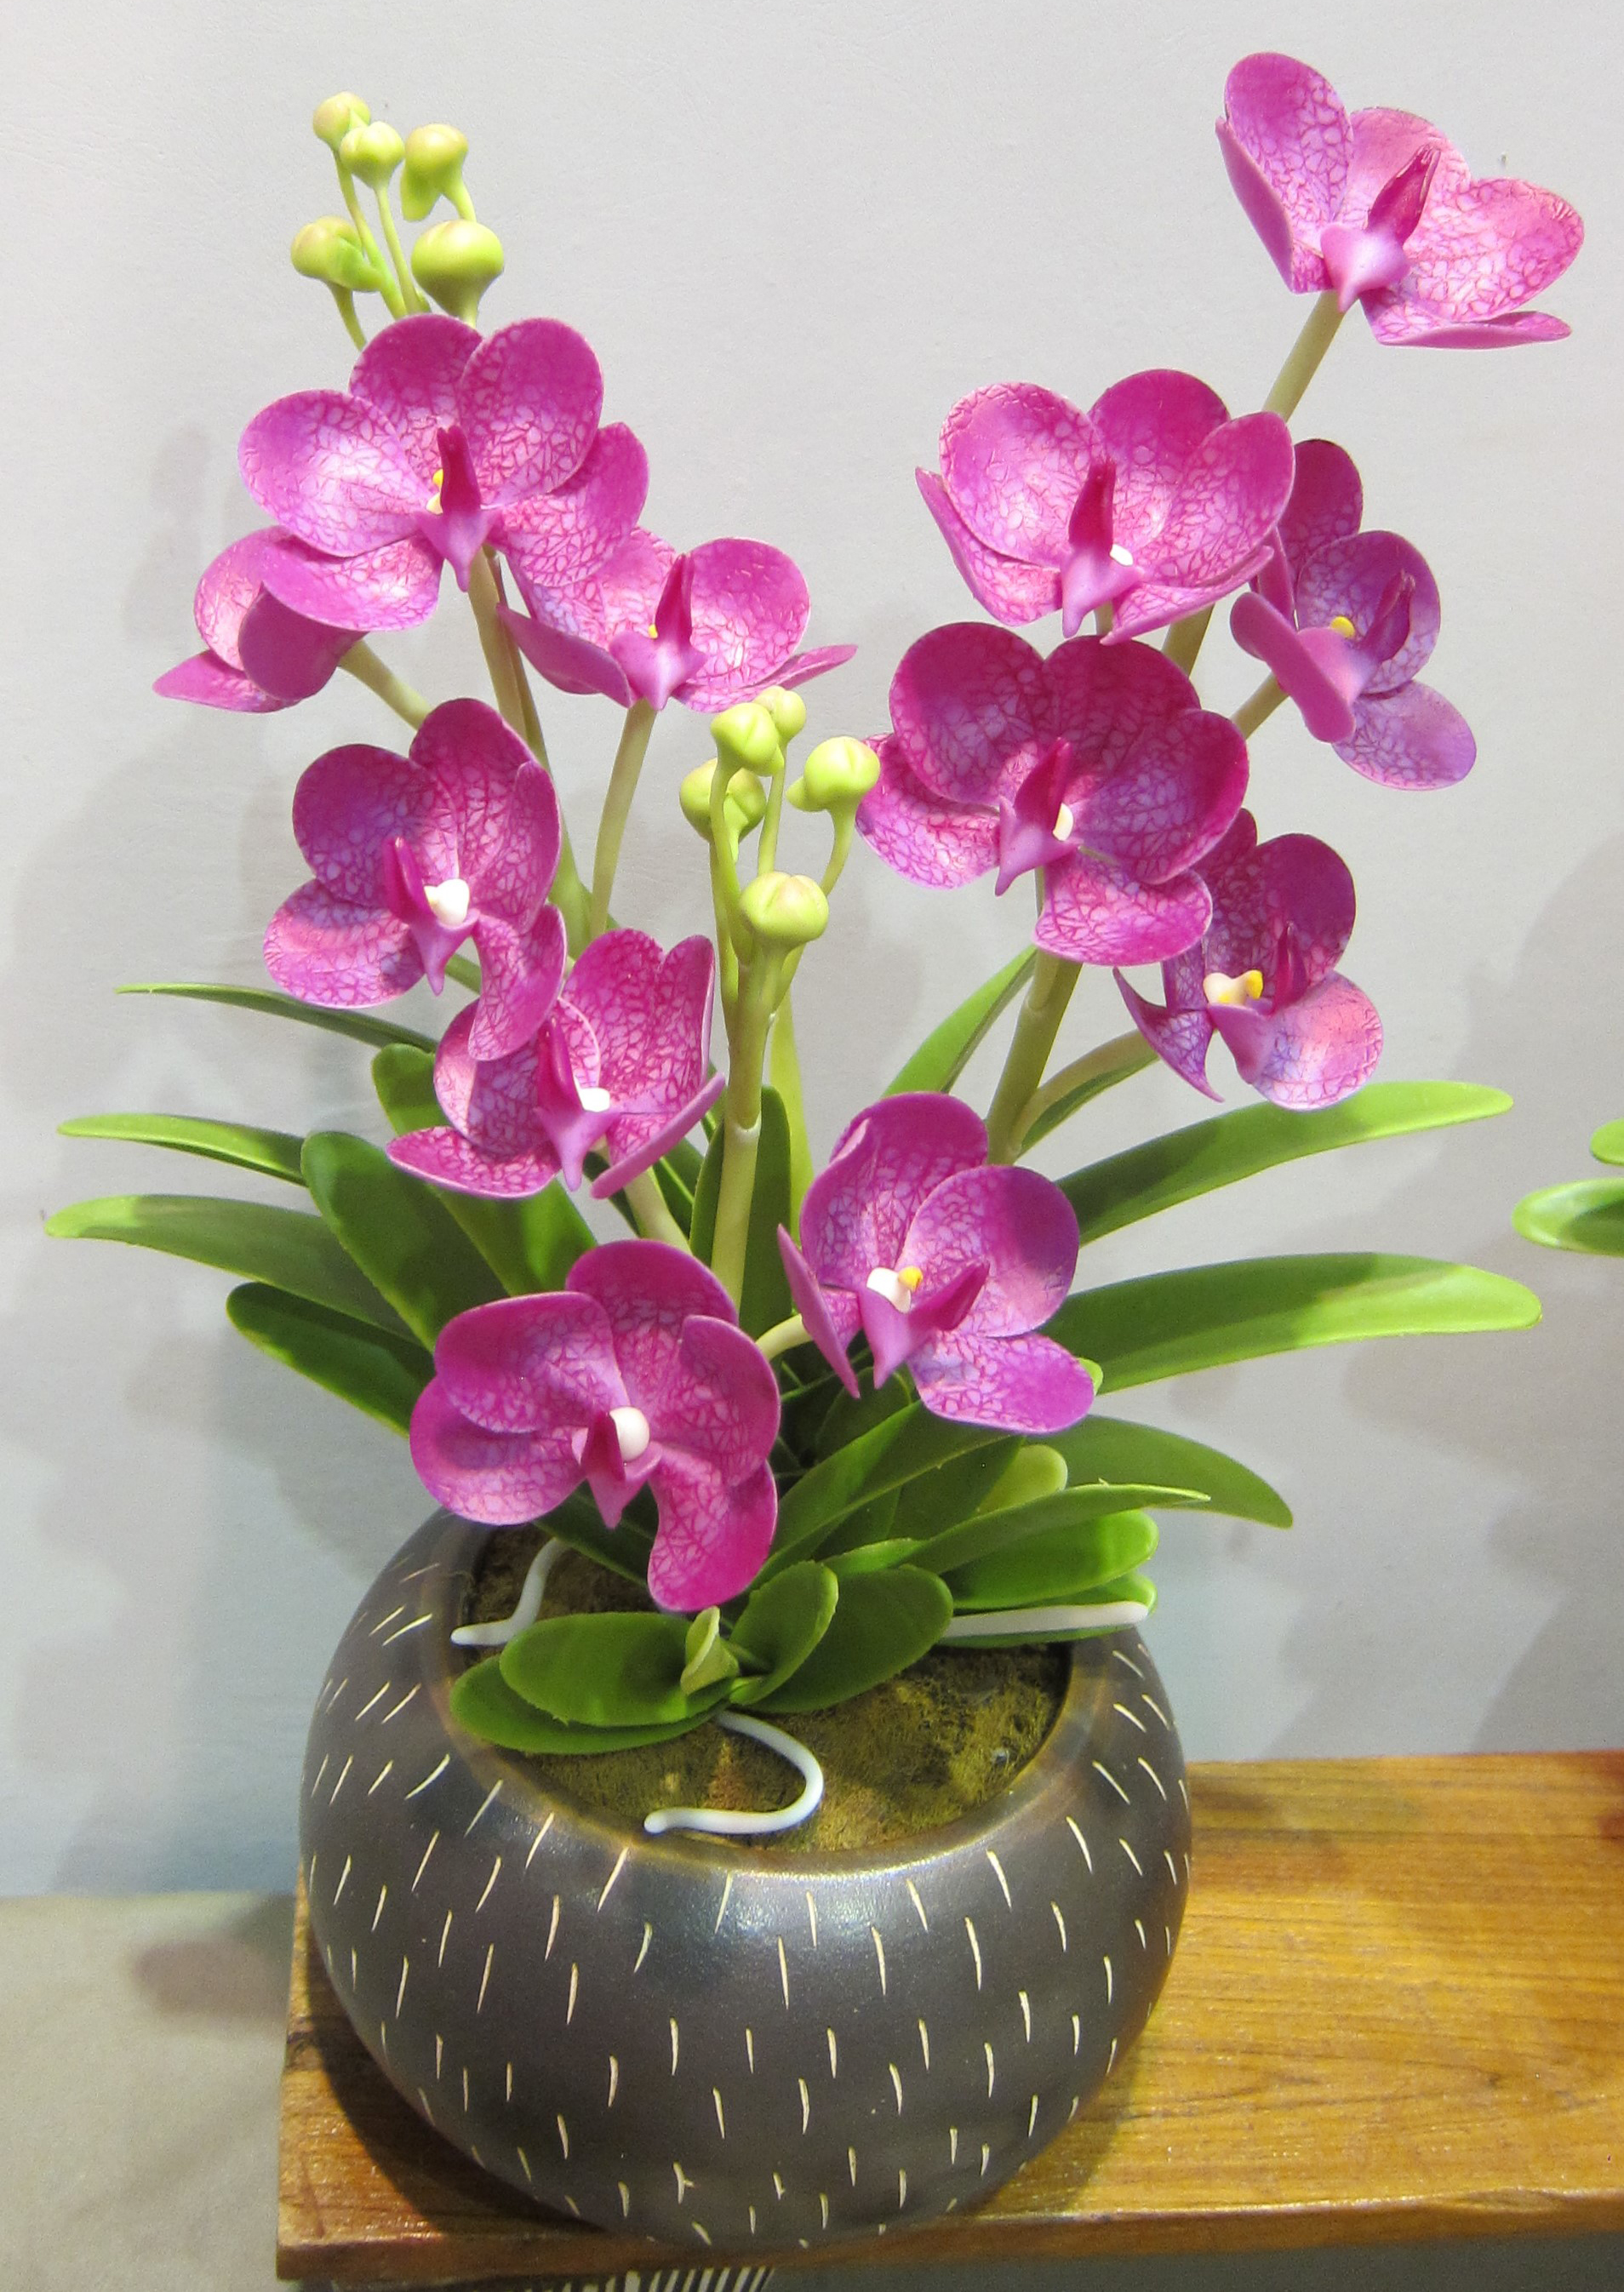 Orchid_3648-1